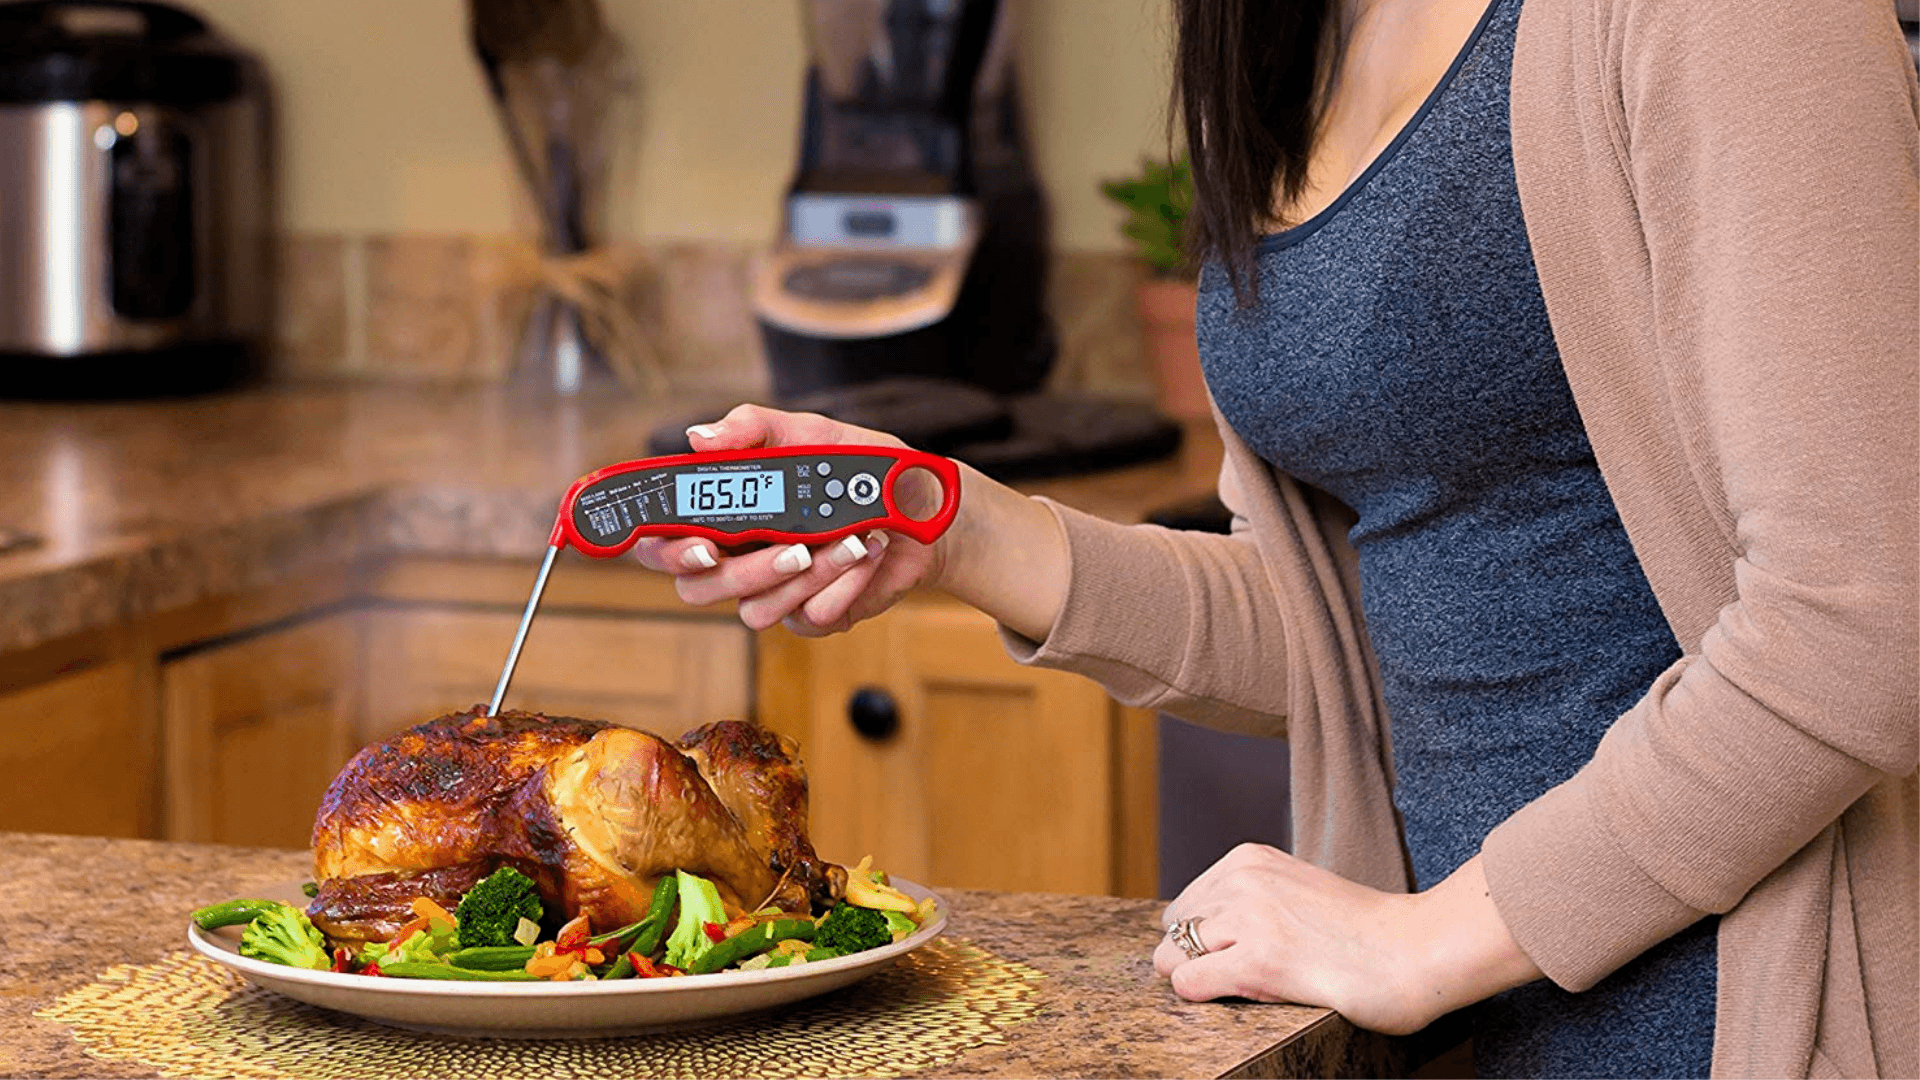 instead read meat thermometer in chicken